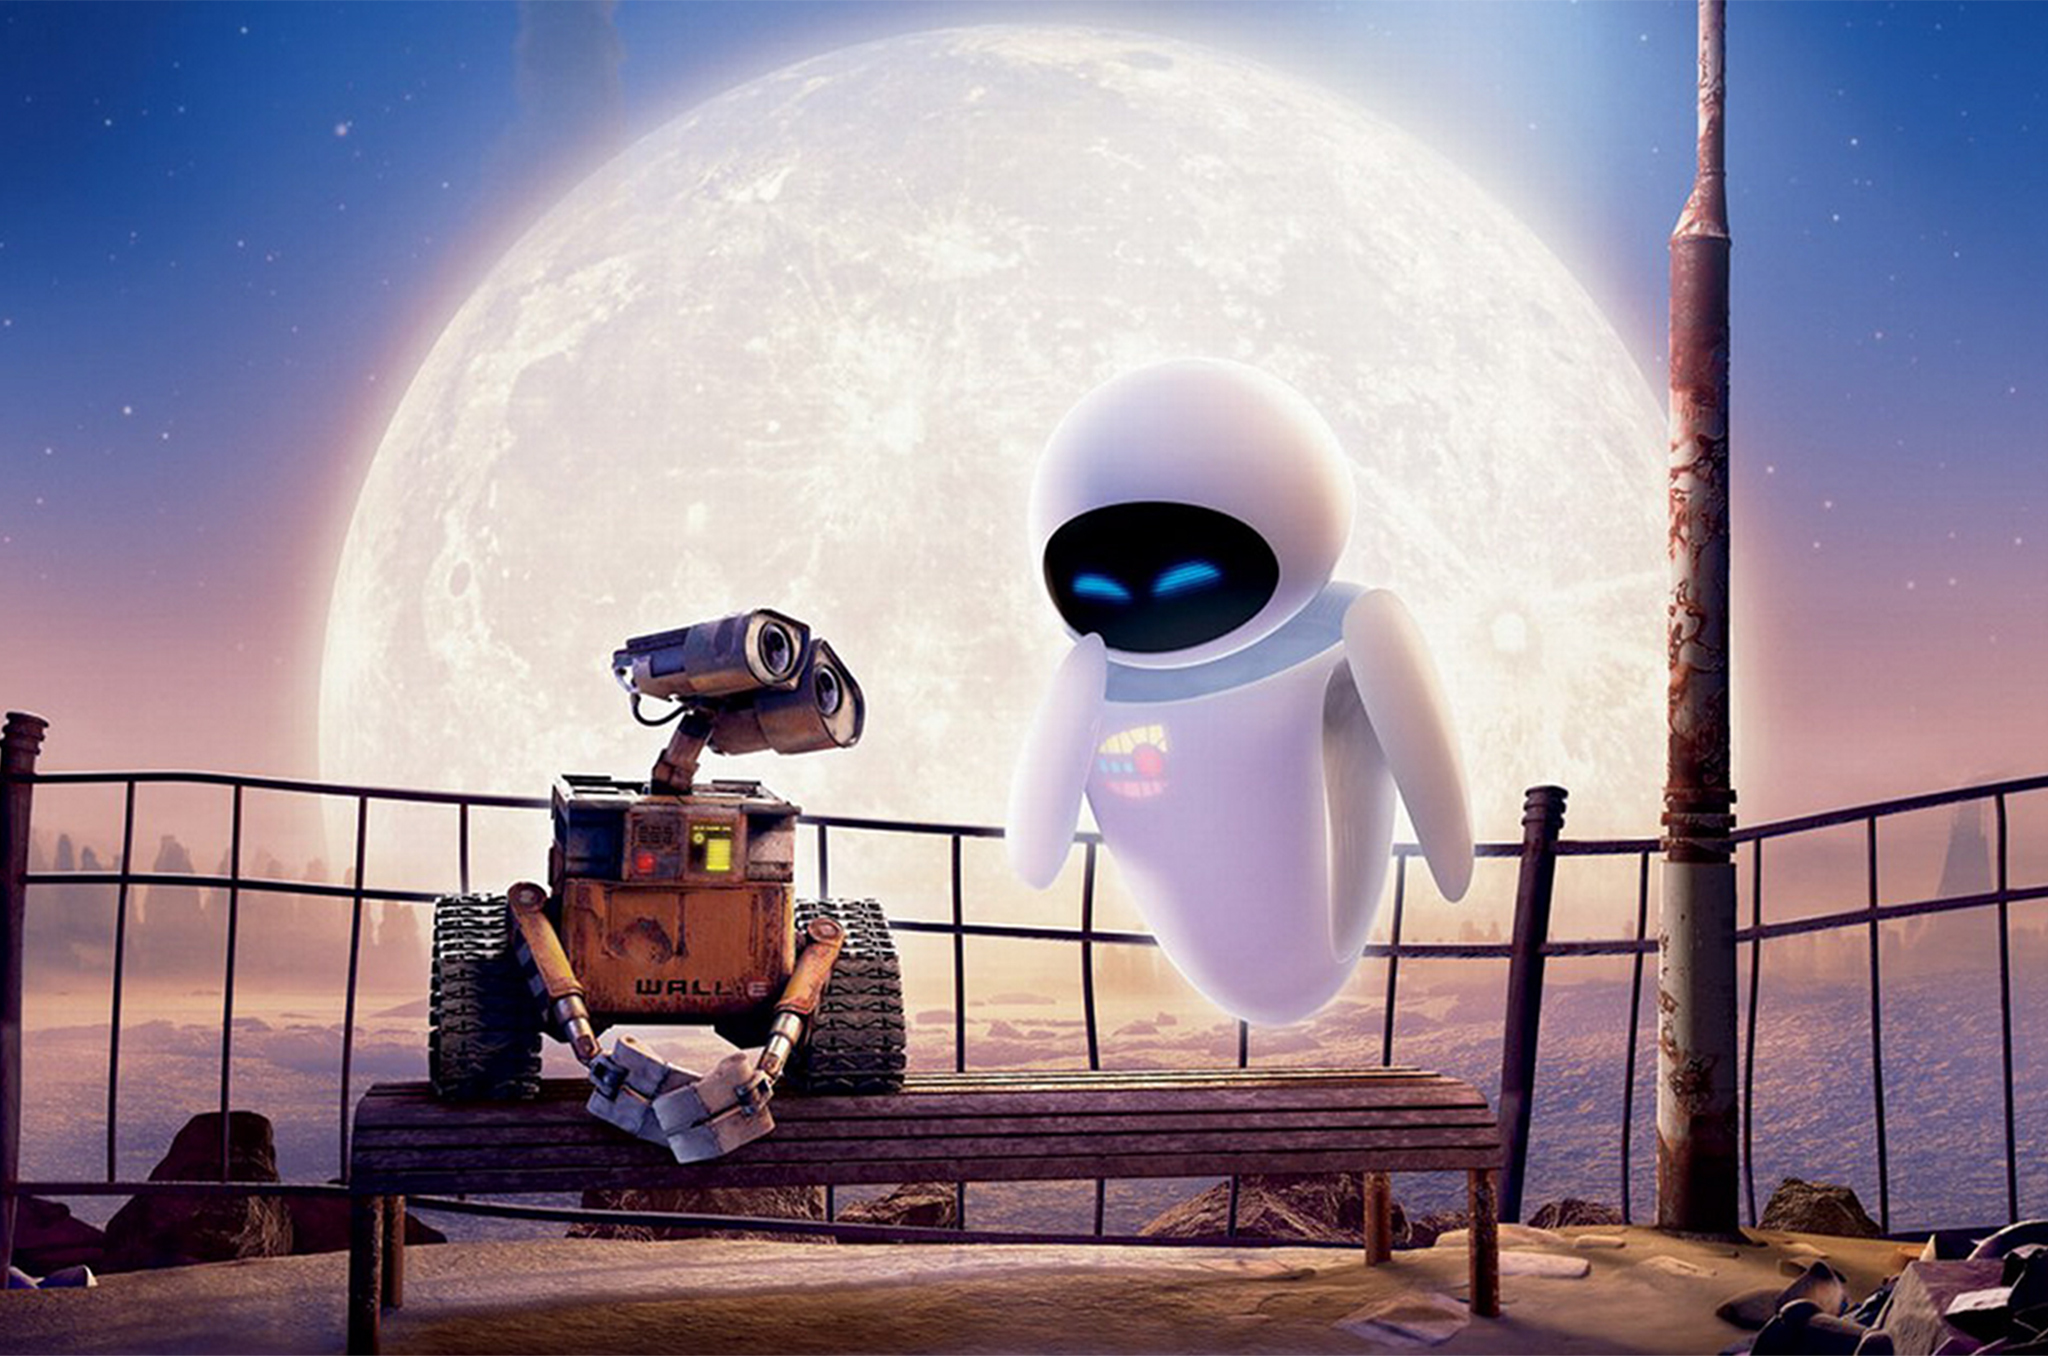 Sci-fi movie: WALL-E